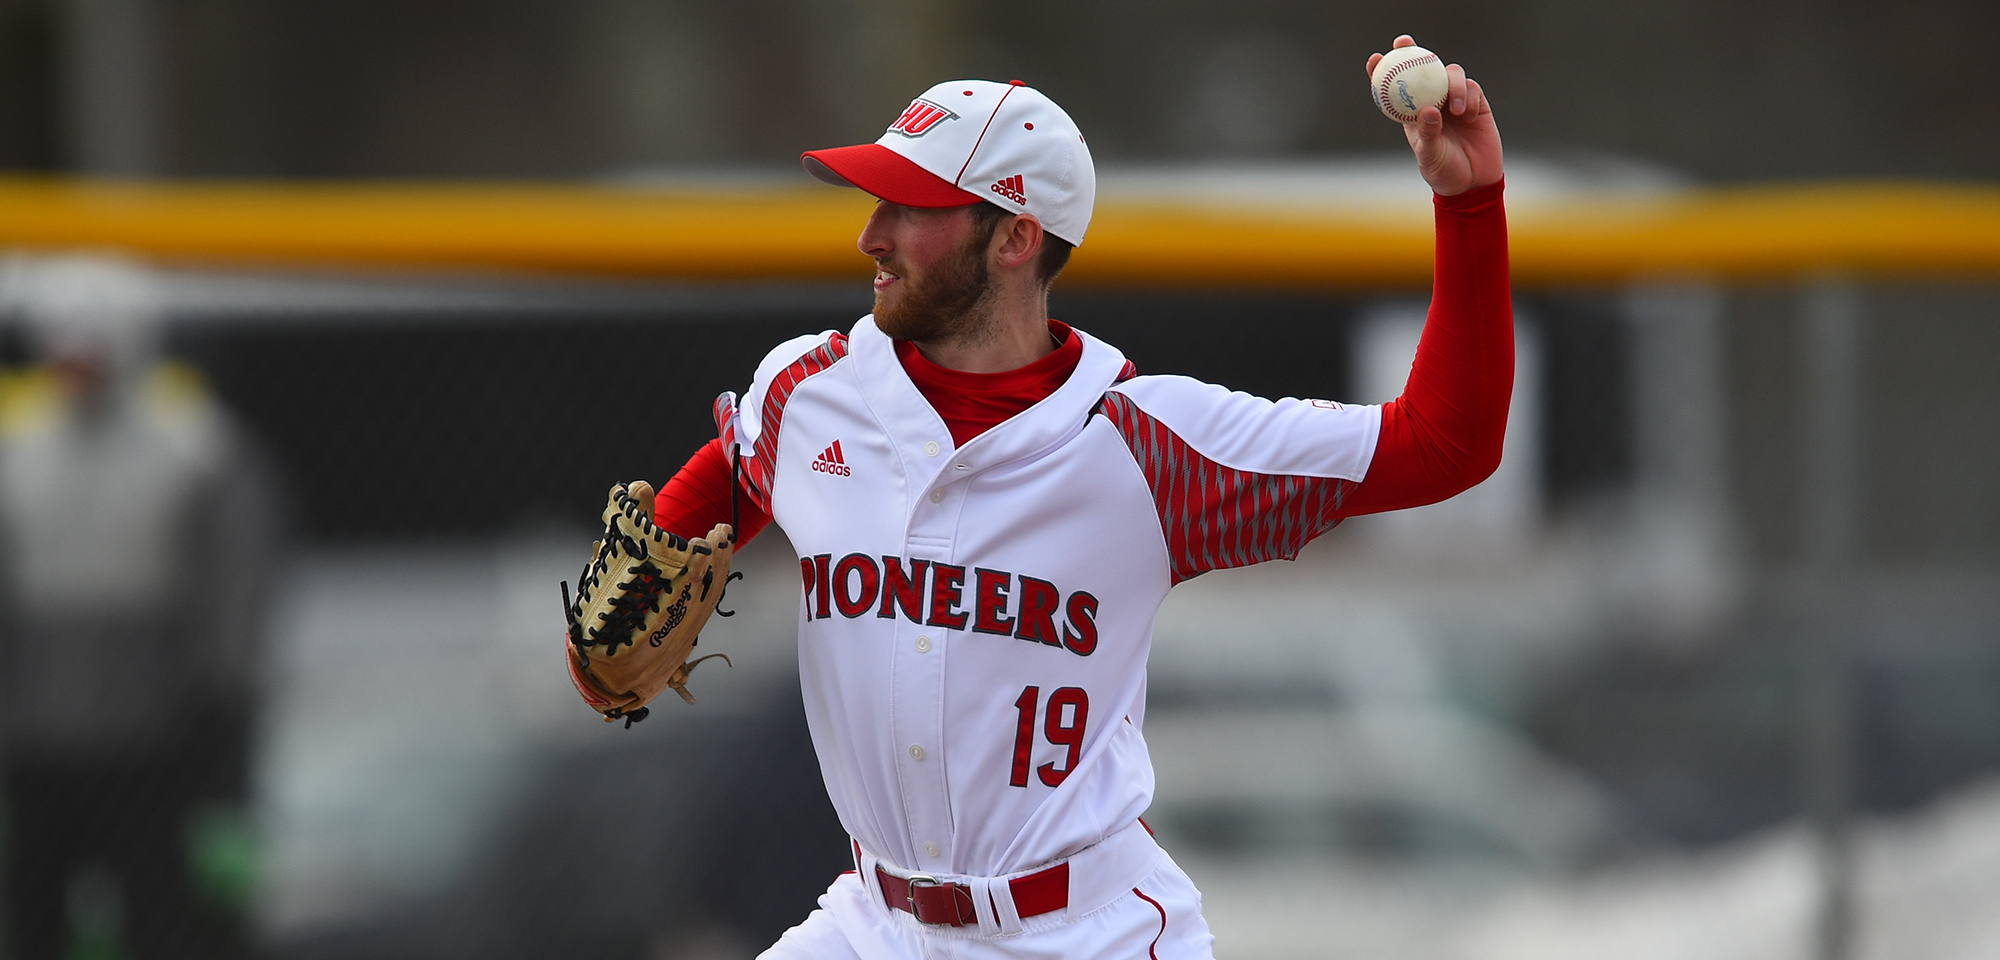 Pioneers Fail to Stop Blackbirds Rally in Series Opener